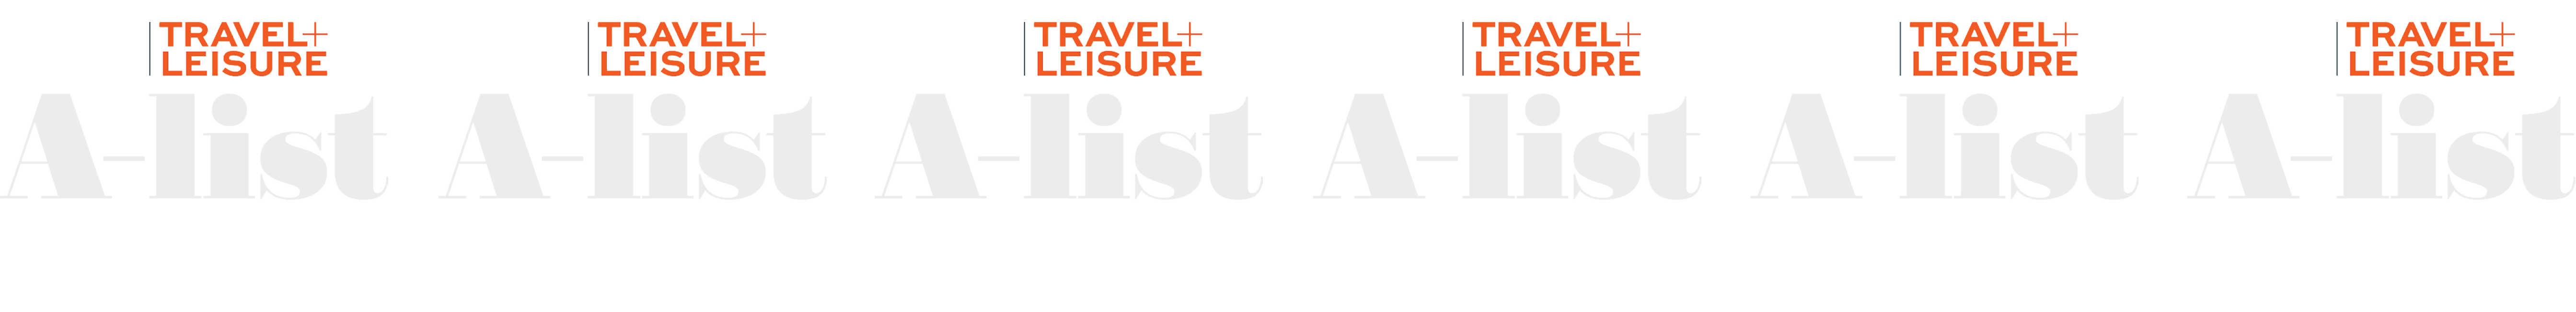 Travel + Leisure A-List Logos